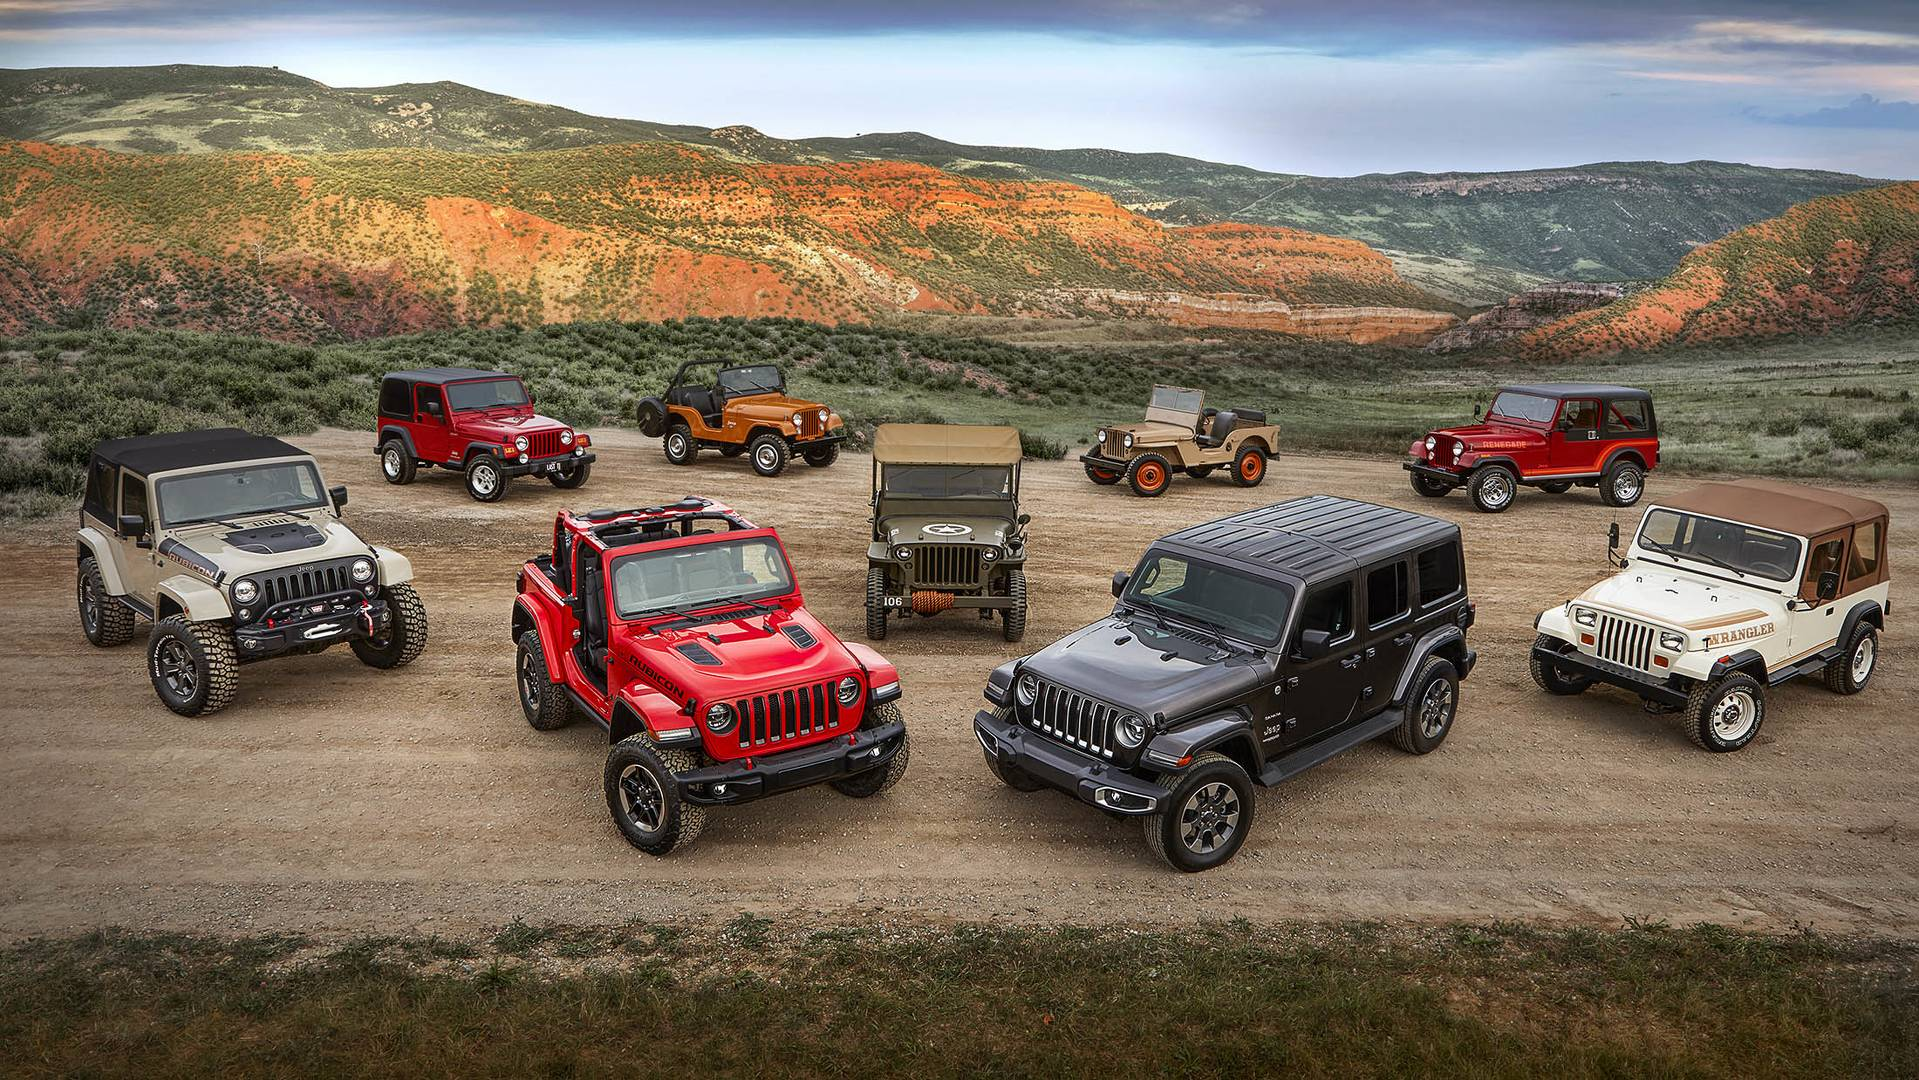 All-new 2018 Jeep® Wrangler Rubicon and Sahara with various historical Wrangler vehicles